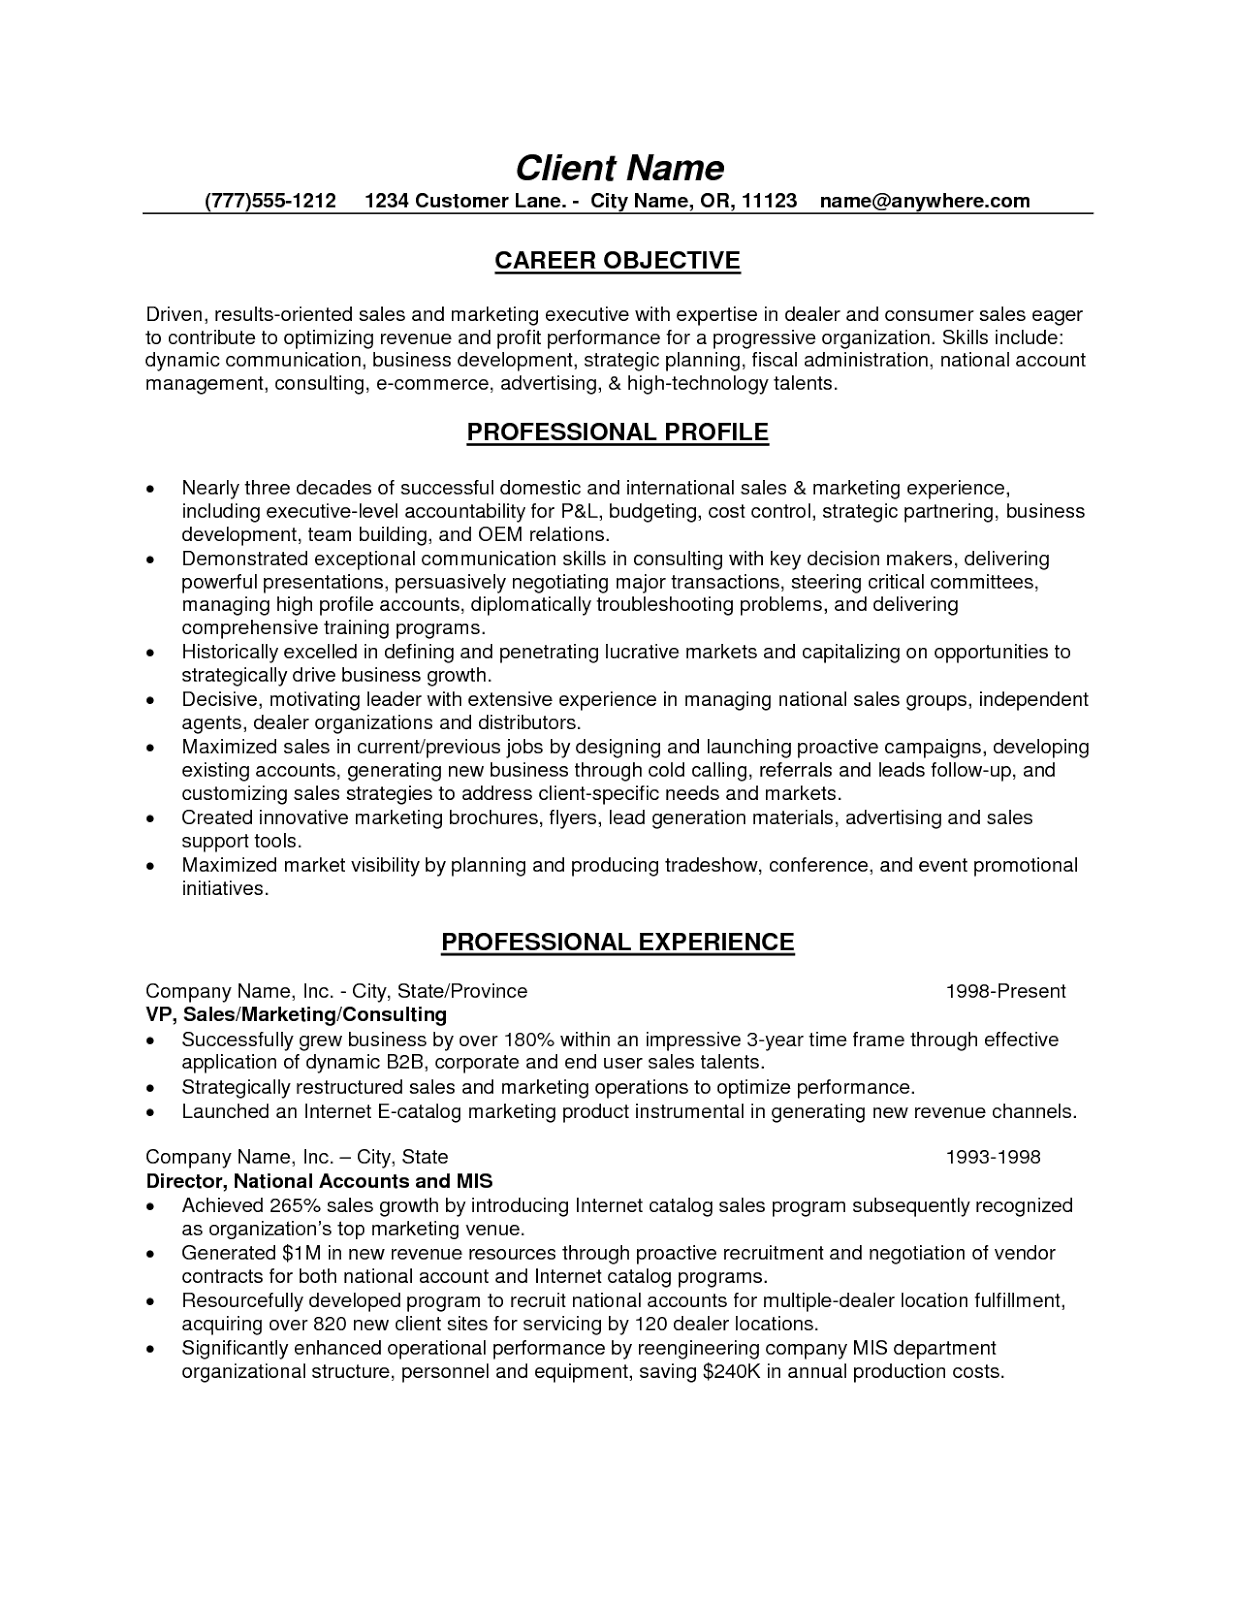 Resume Objective Samples Administrative Lines Examples Essay